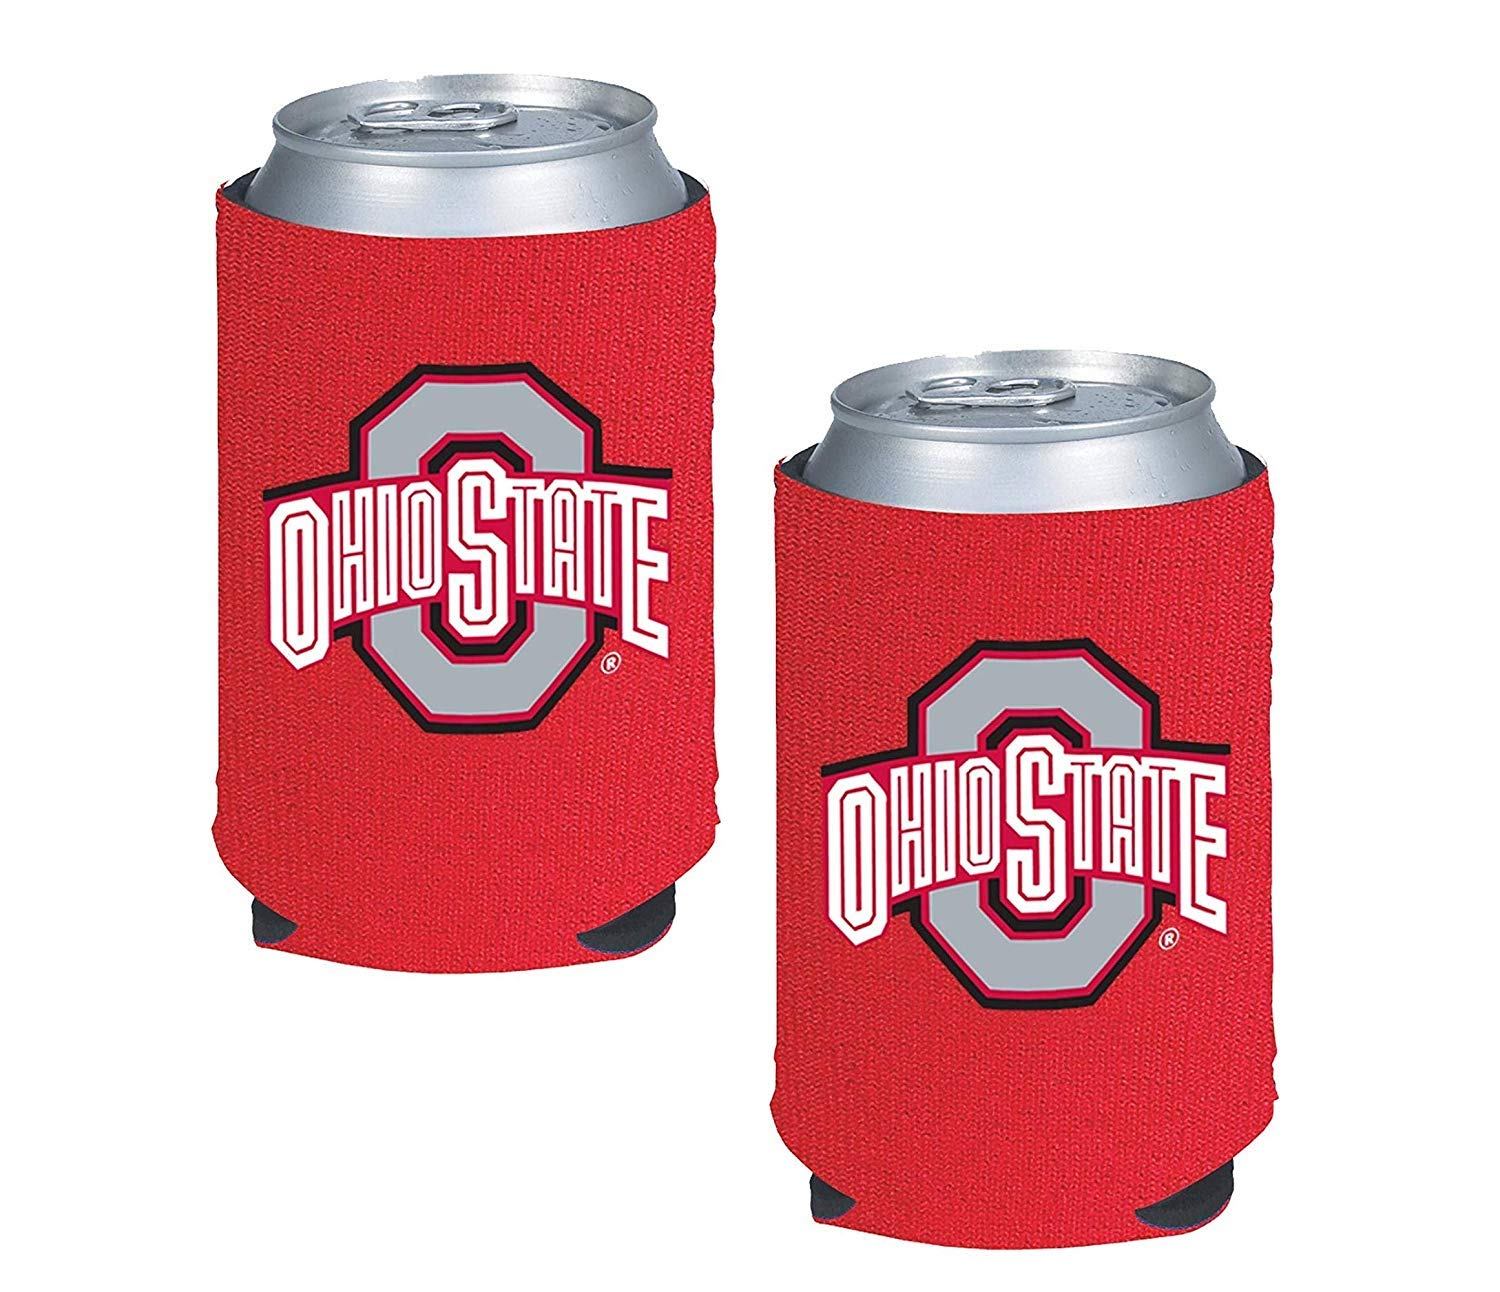 NCAA Fan Shop Authentic 2-Pack Insulated 350ml Can Cooler. Show School Pride at Home, Tailgating or at a Game. Great for Students, Alumni or Fans. (Ohio State Buckeyes)   B07H8P64QX